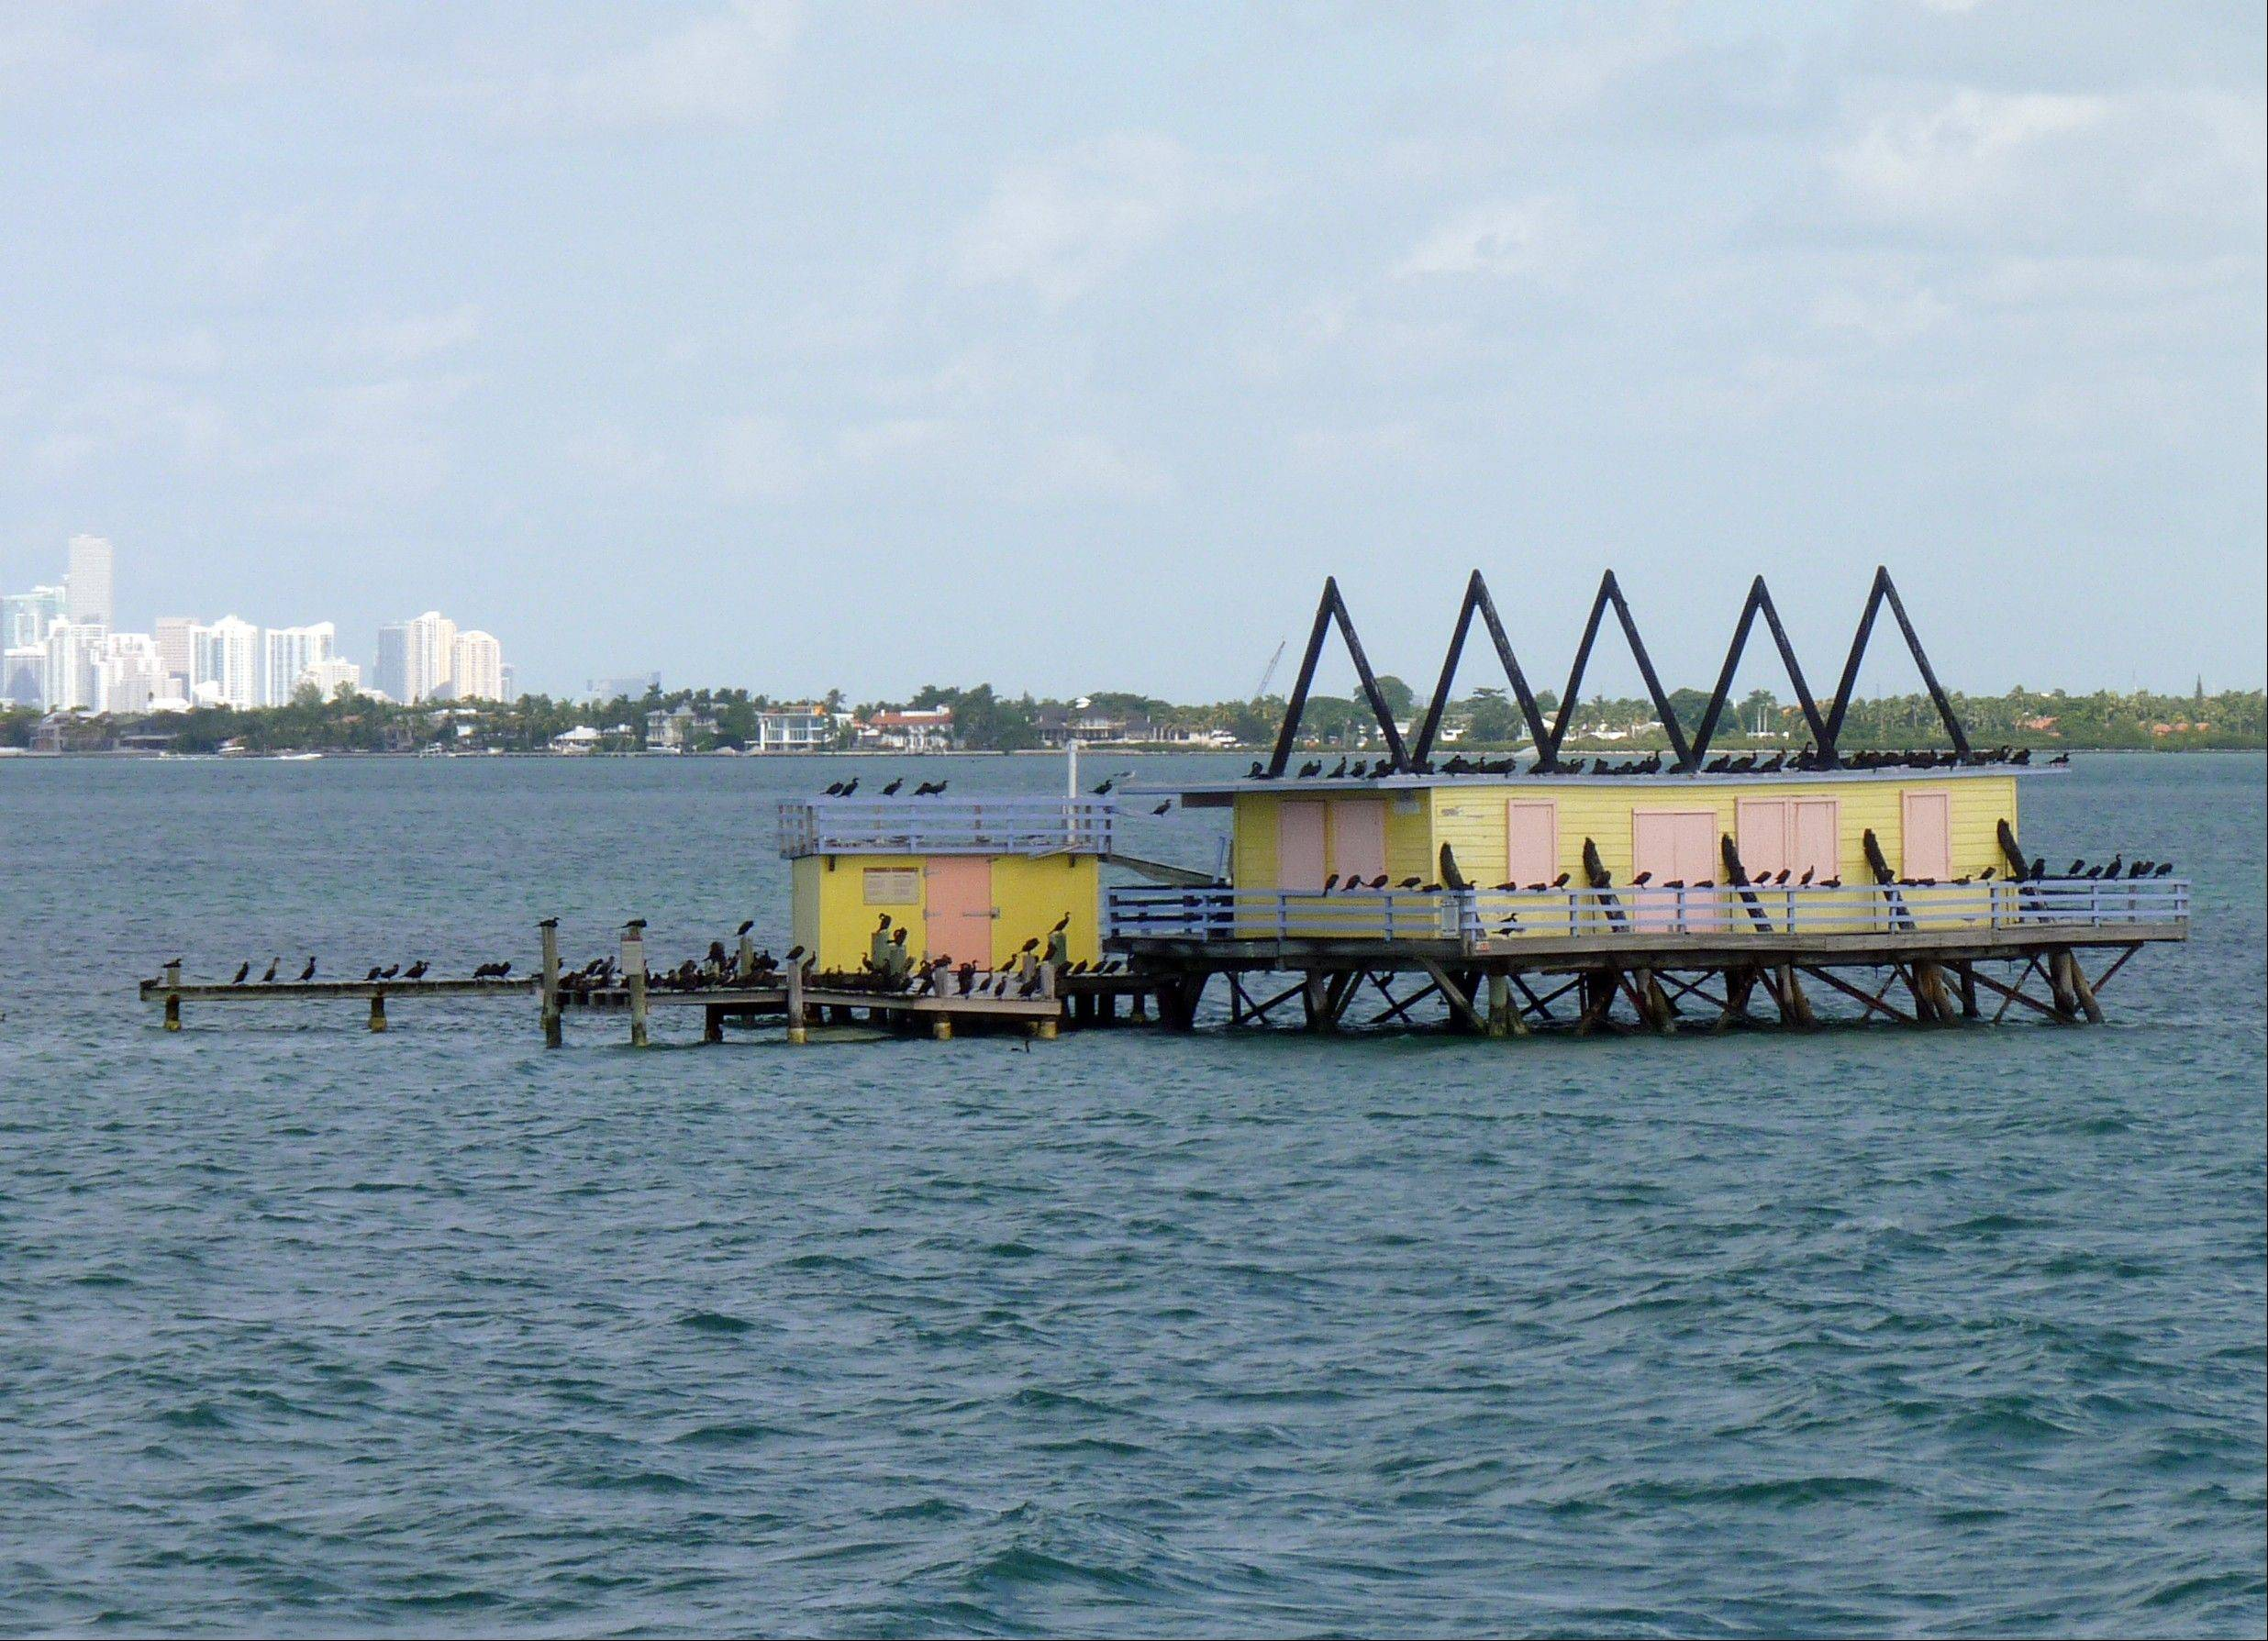 One of the seven Stiltsville homes near Miami. The narrated tour tells the colorful story of these homes perched above the shallow waters of Biscayne Bay.